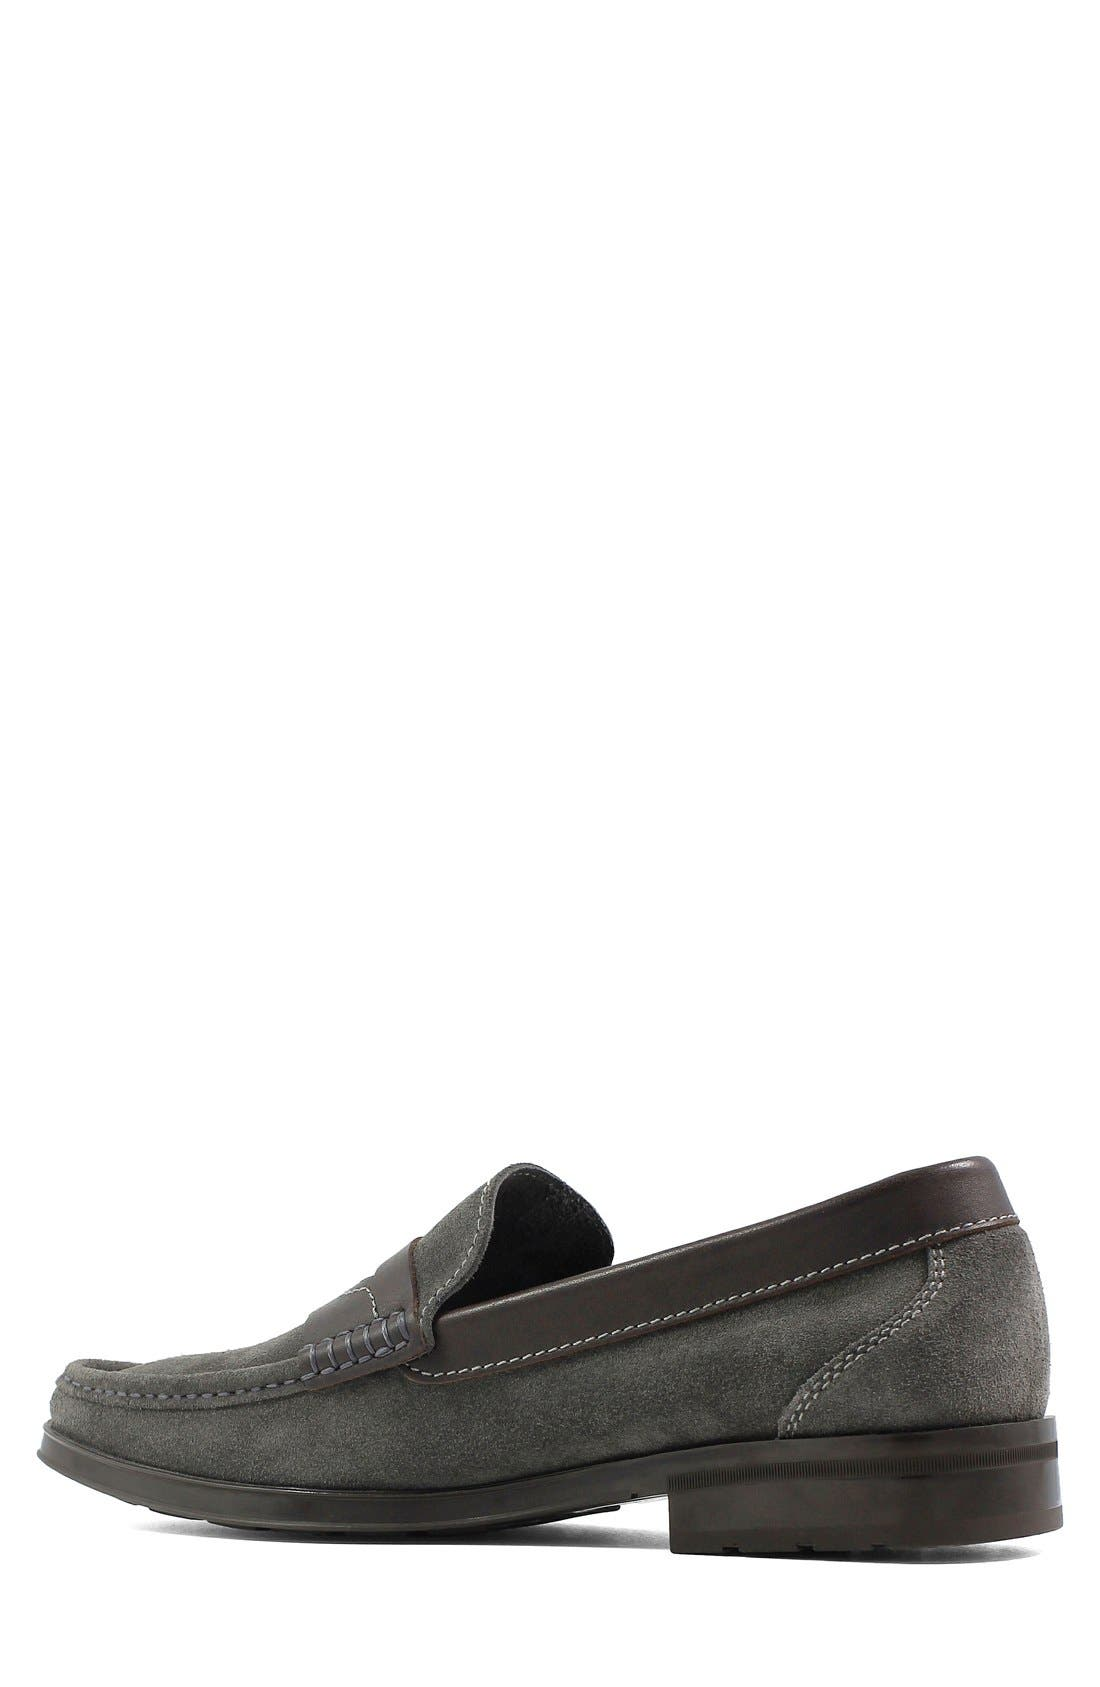 Westbrook Penny Loafer,                             Alternate thumbnail 20, color,